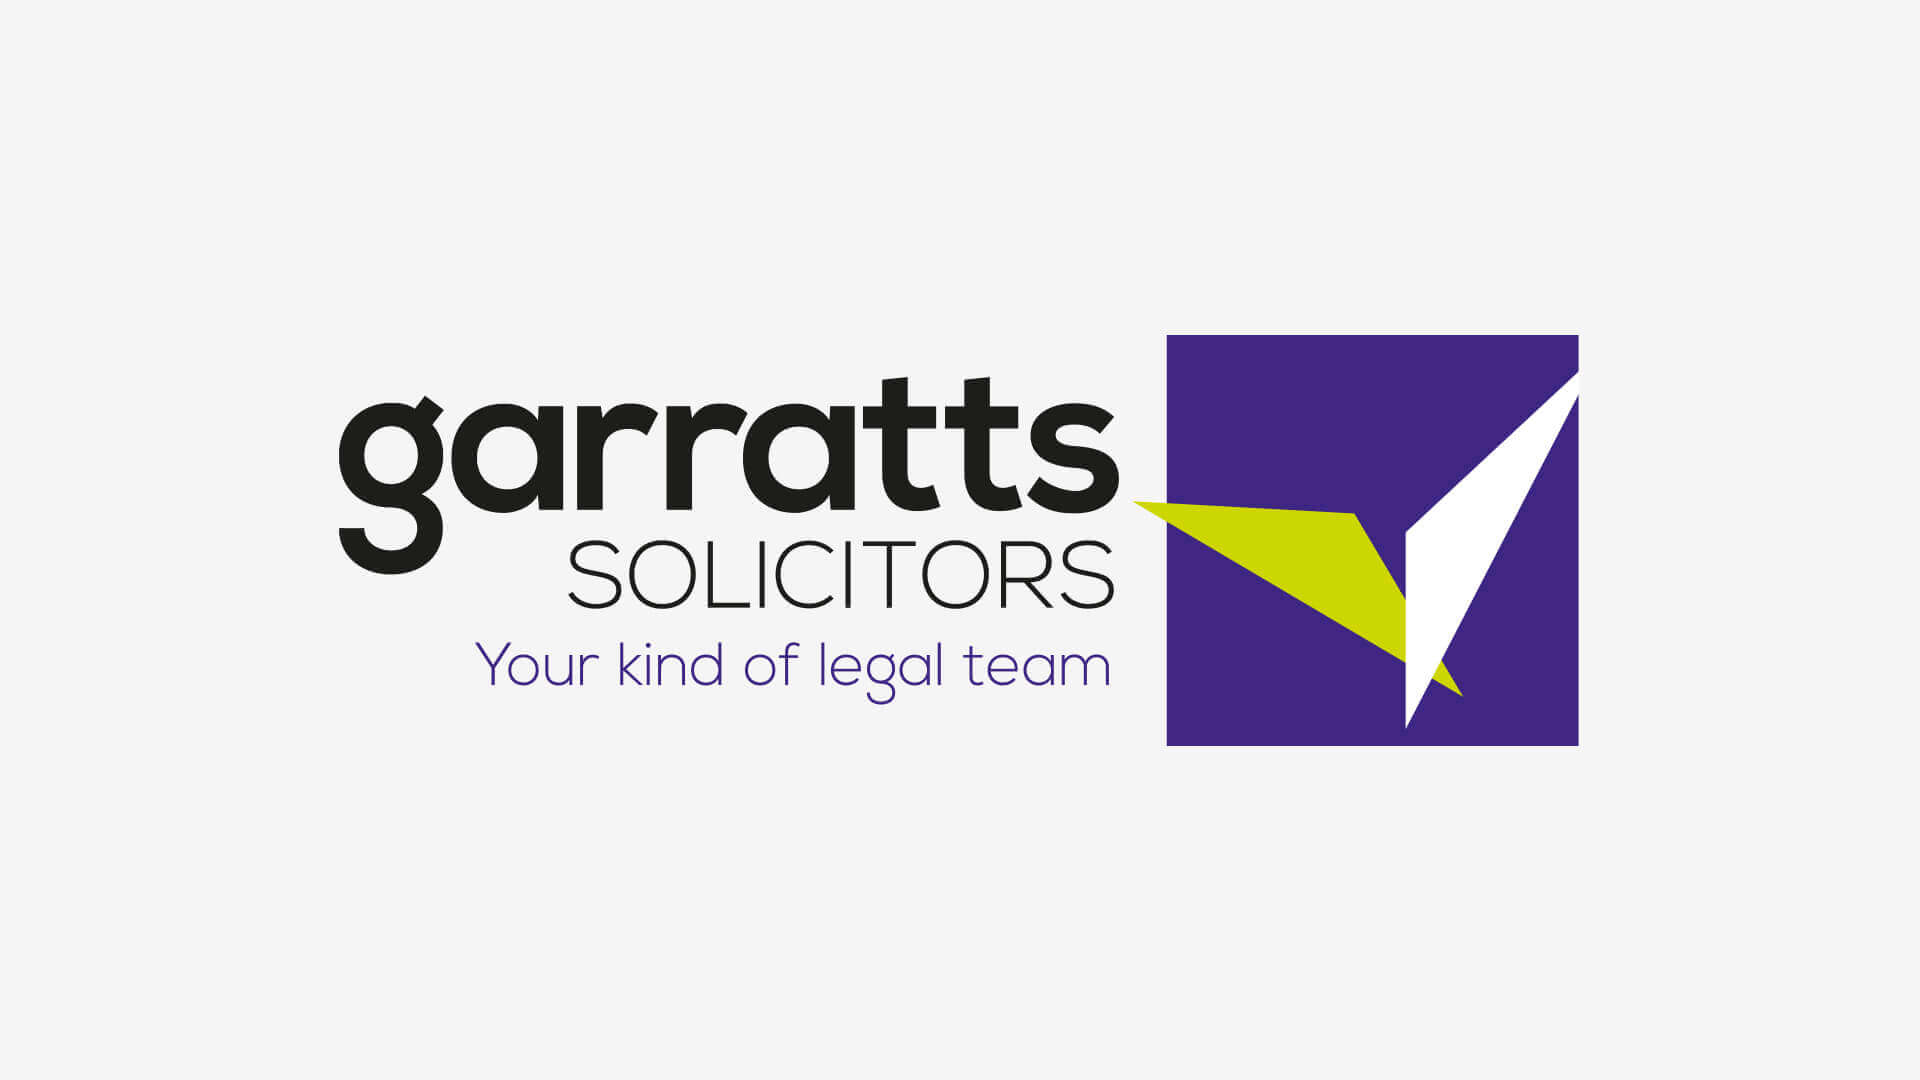 Garratts Solicitors image